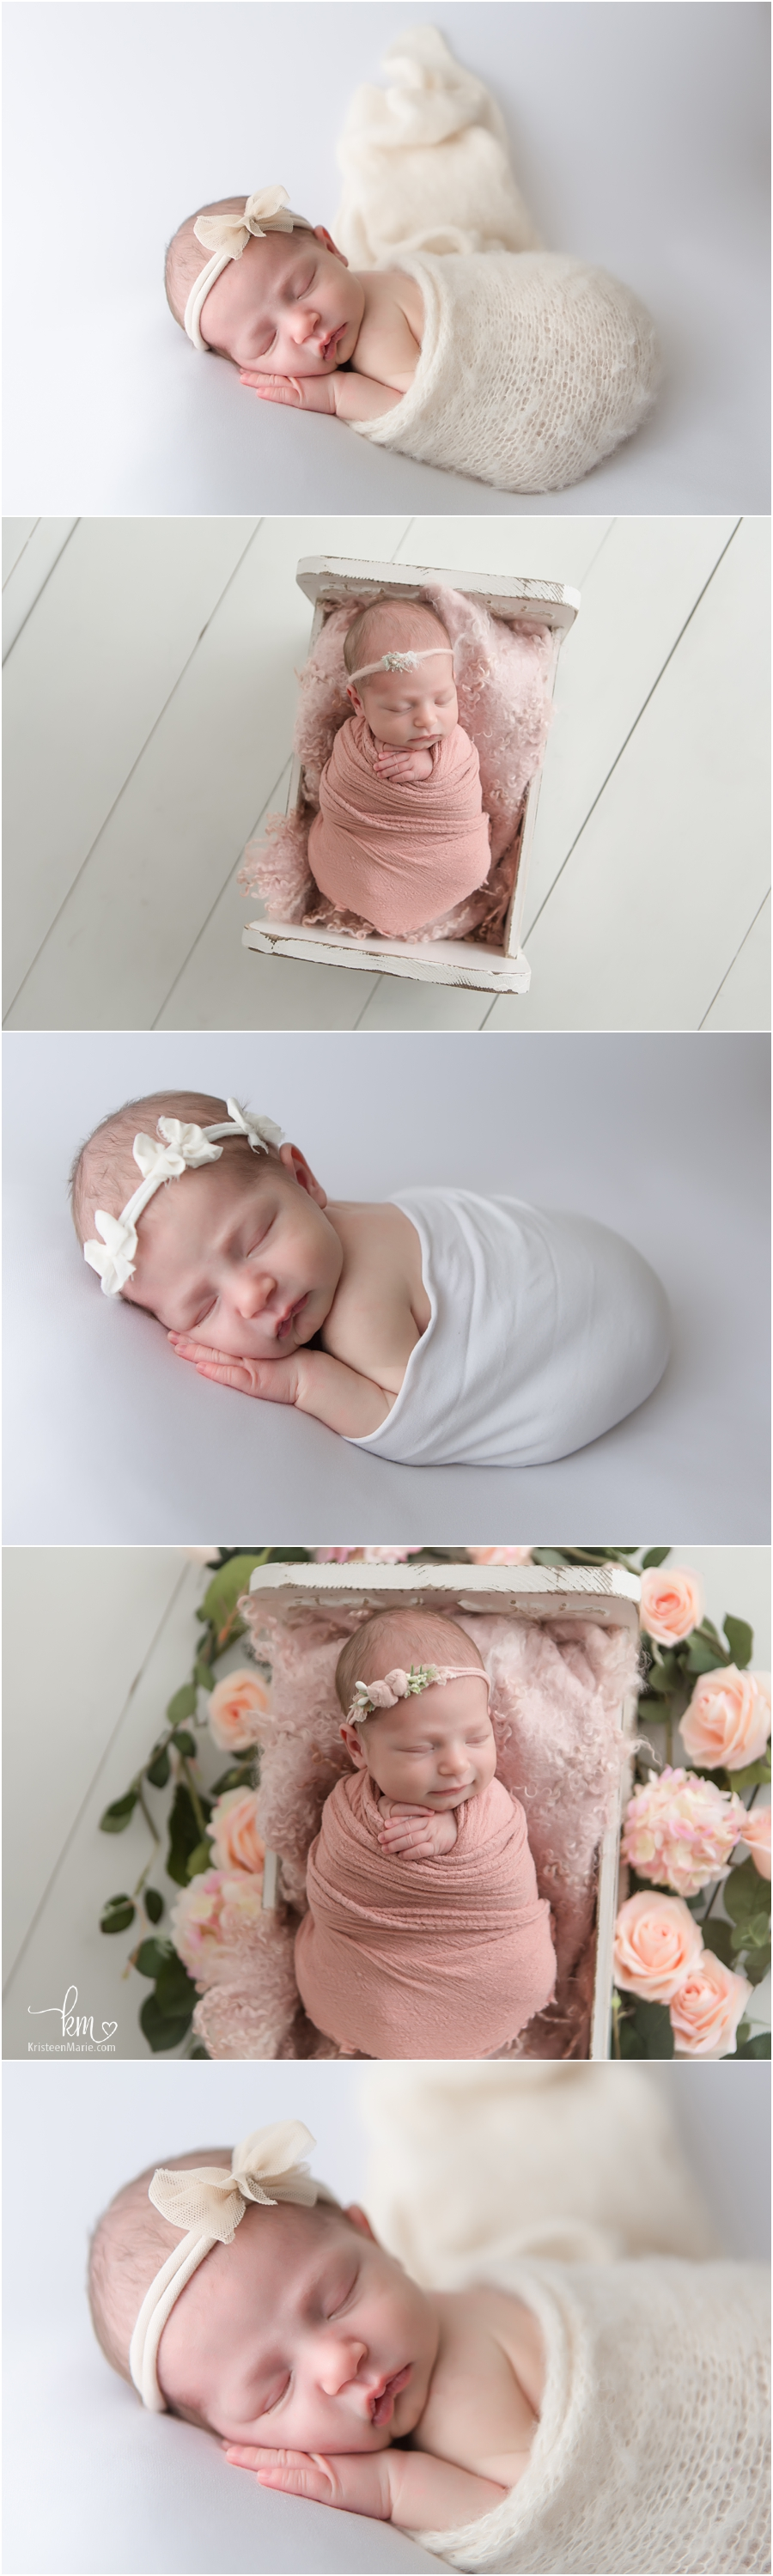 newborn baby girl on neutral backdrop - simple newborn poses